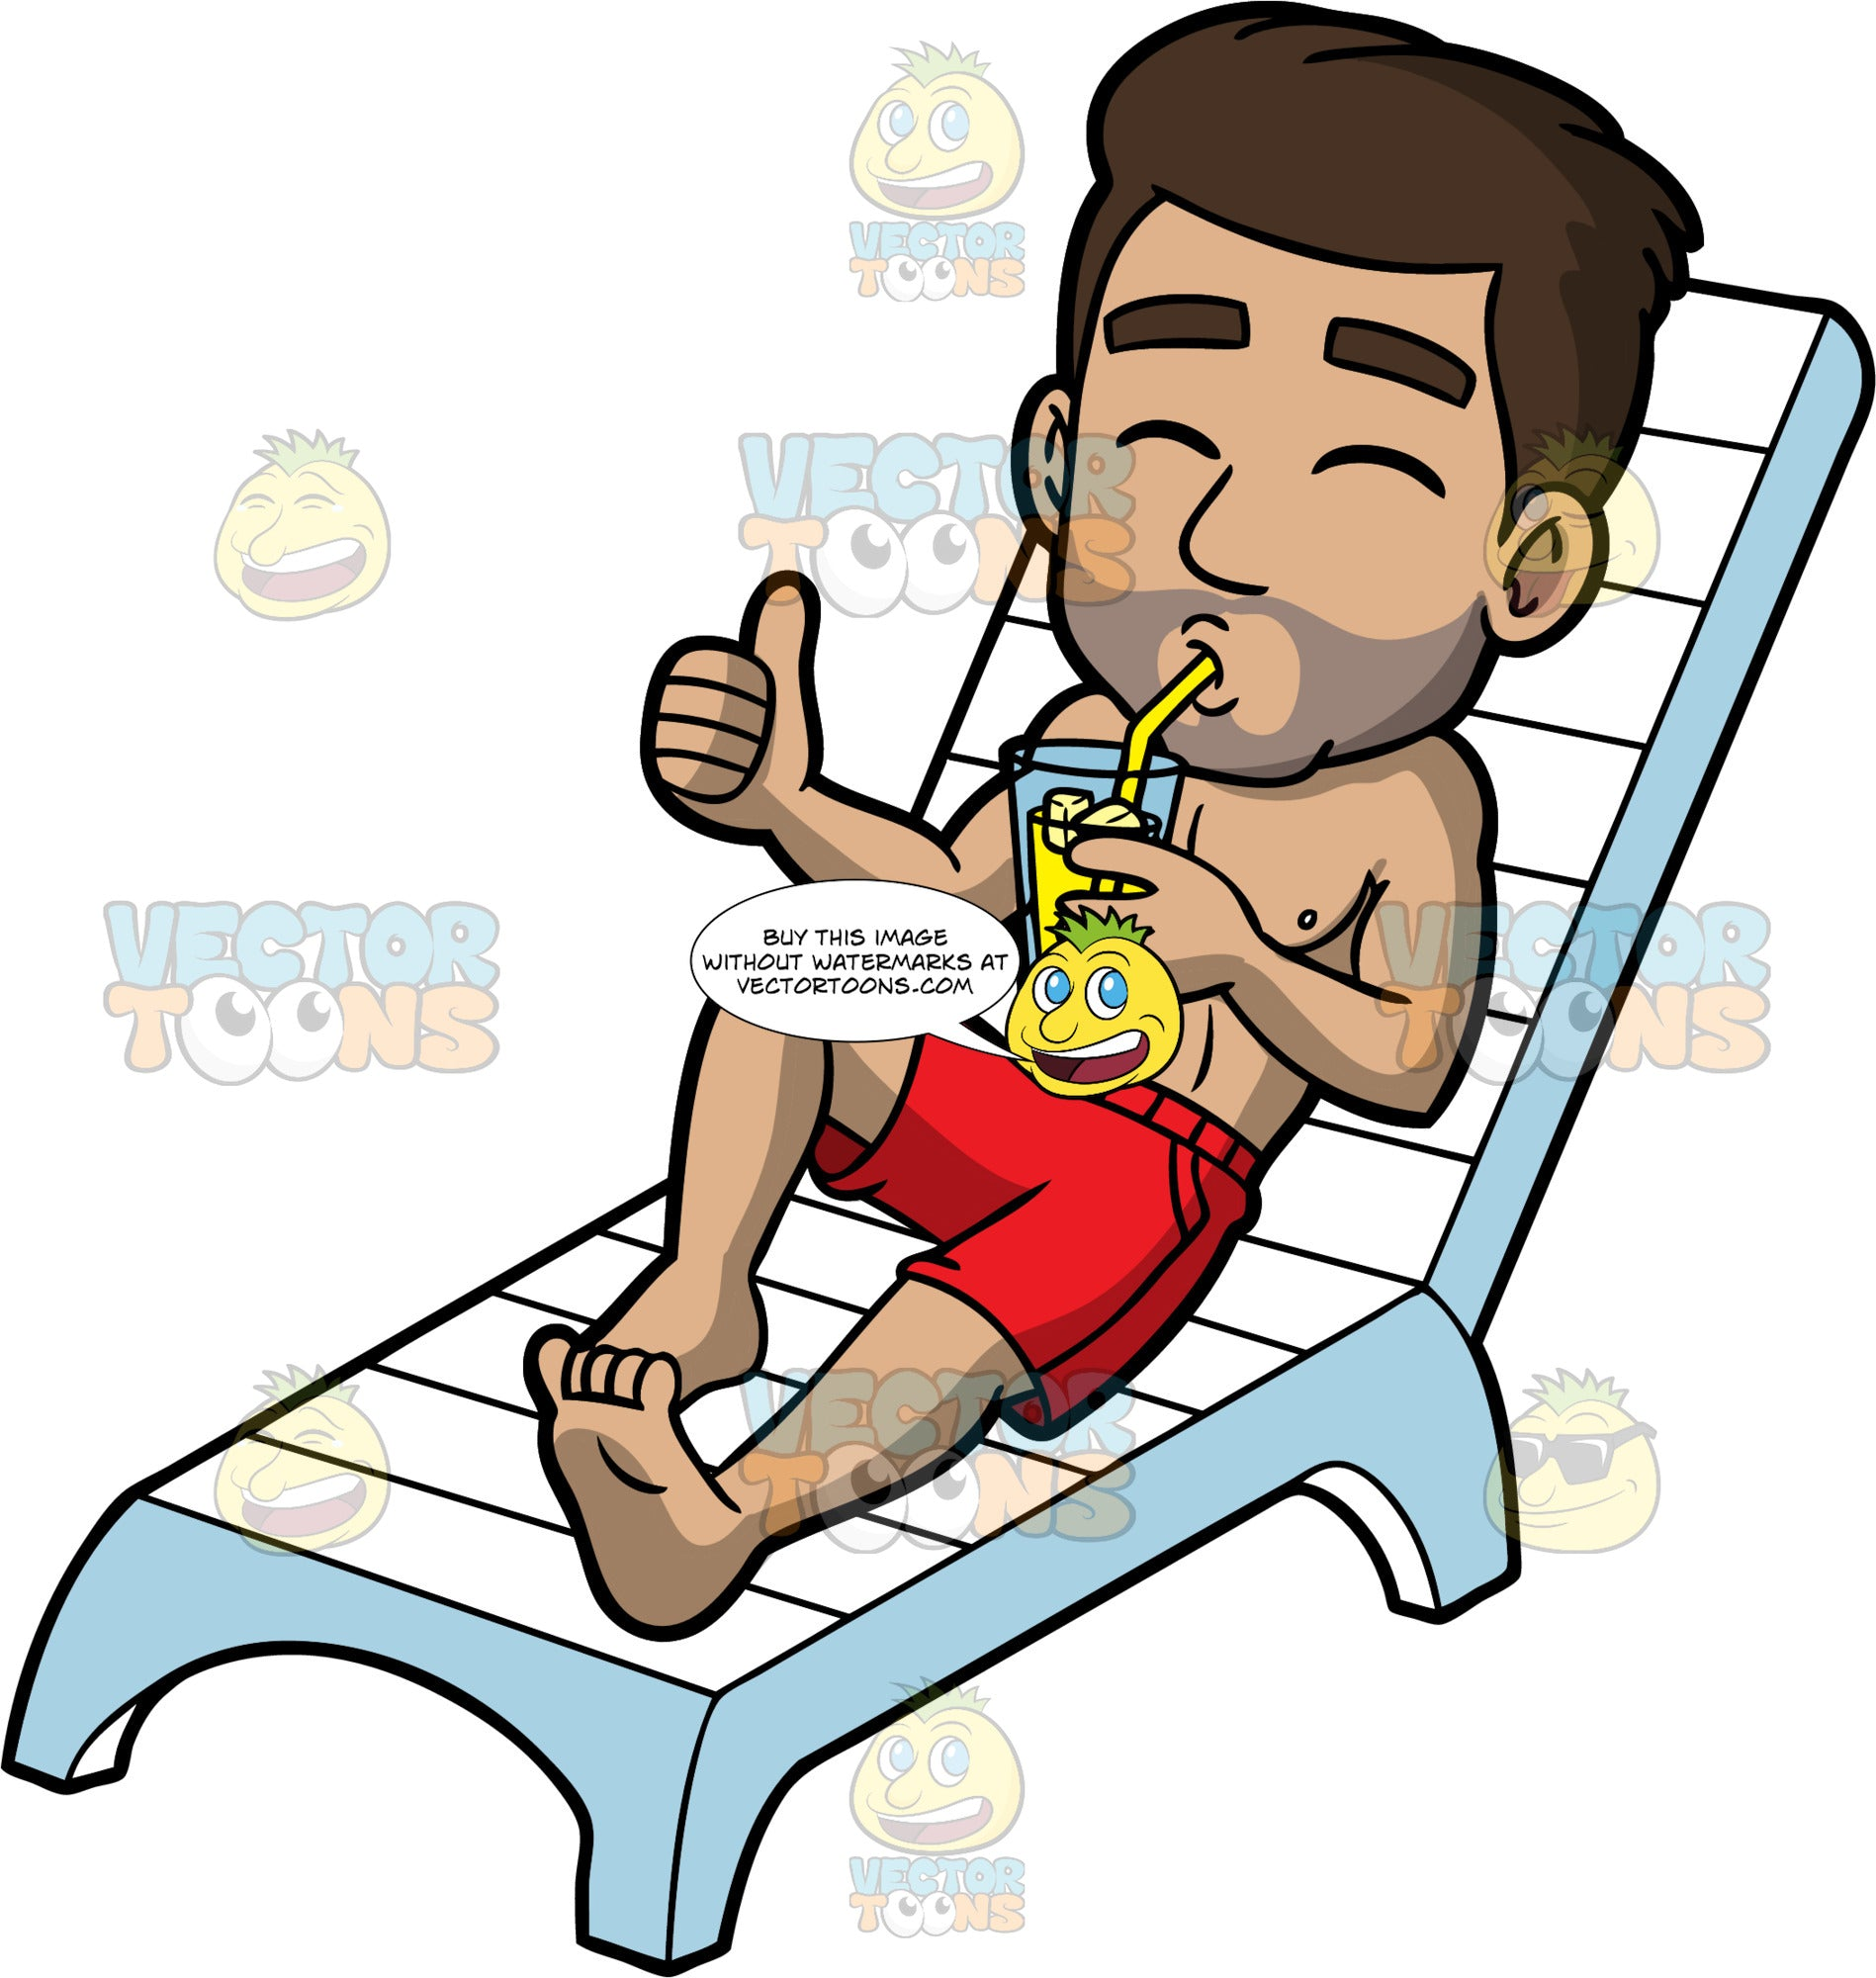 Gabriel Sipping A Drink In The Sun. A Hispanic man wearing red swim trunks, lying down on a white lounge chair, sipping on a cold drink and giving the thumbs up